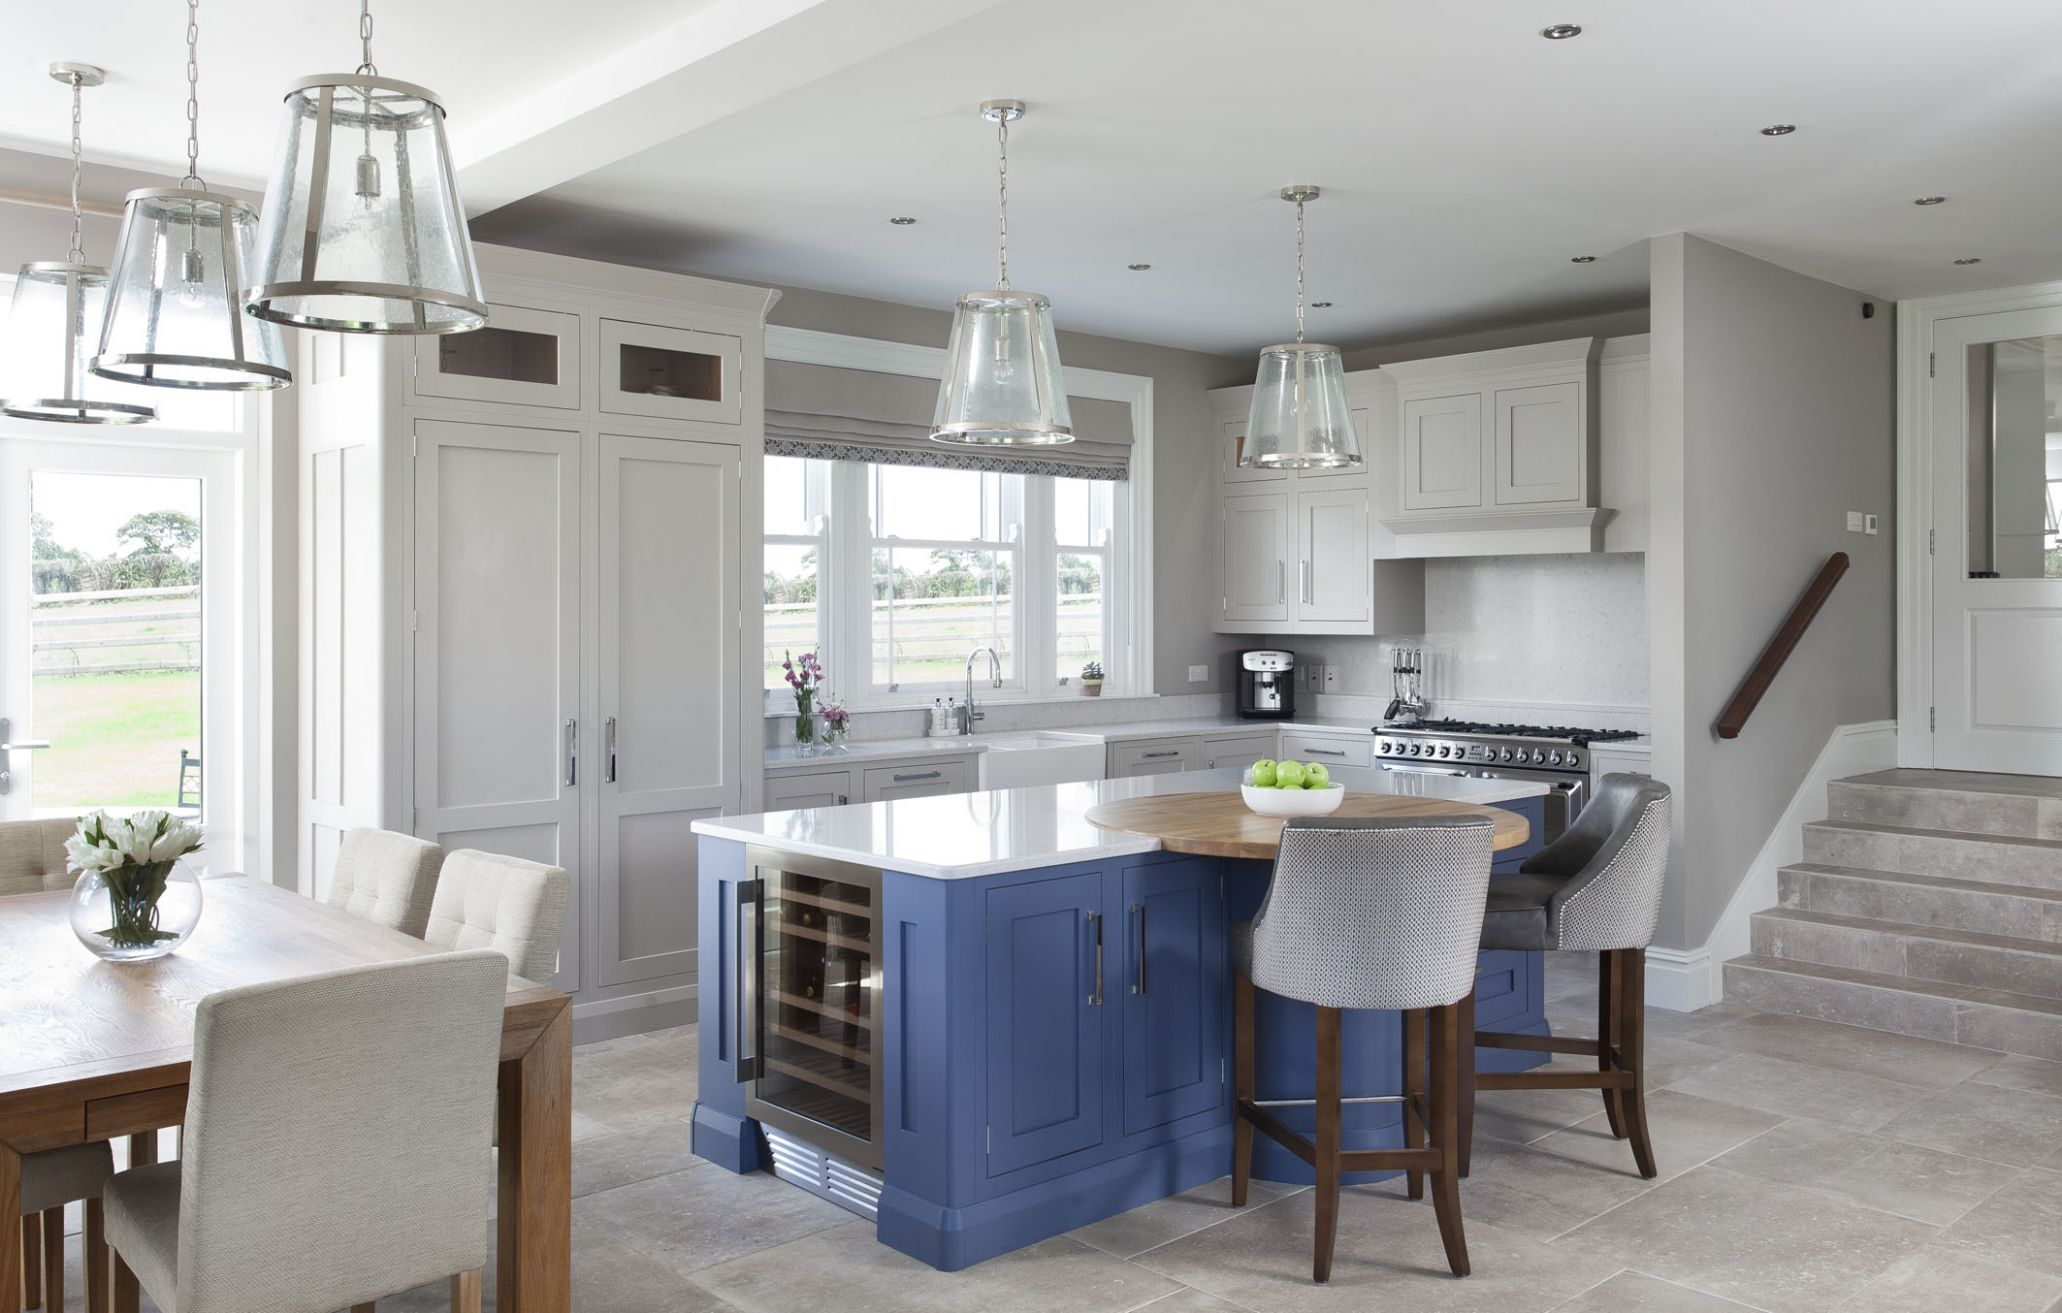 WRIGHTS DESIGN HOUSE - AWARD WINNING KITCHEN, LISBURN, BELFAST ..